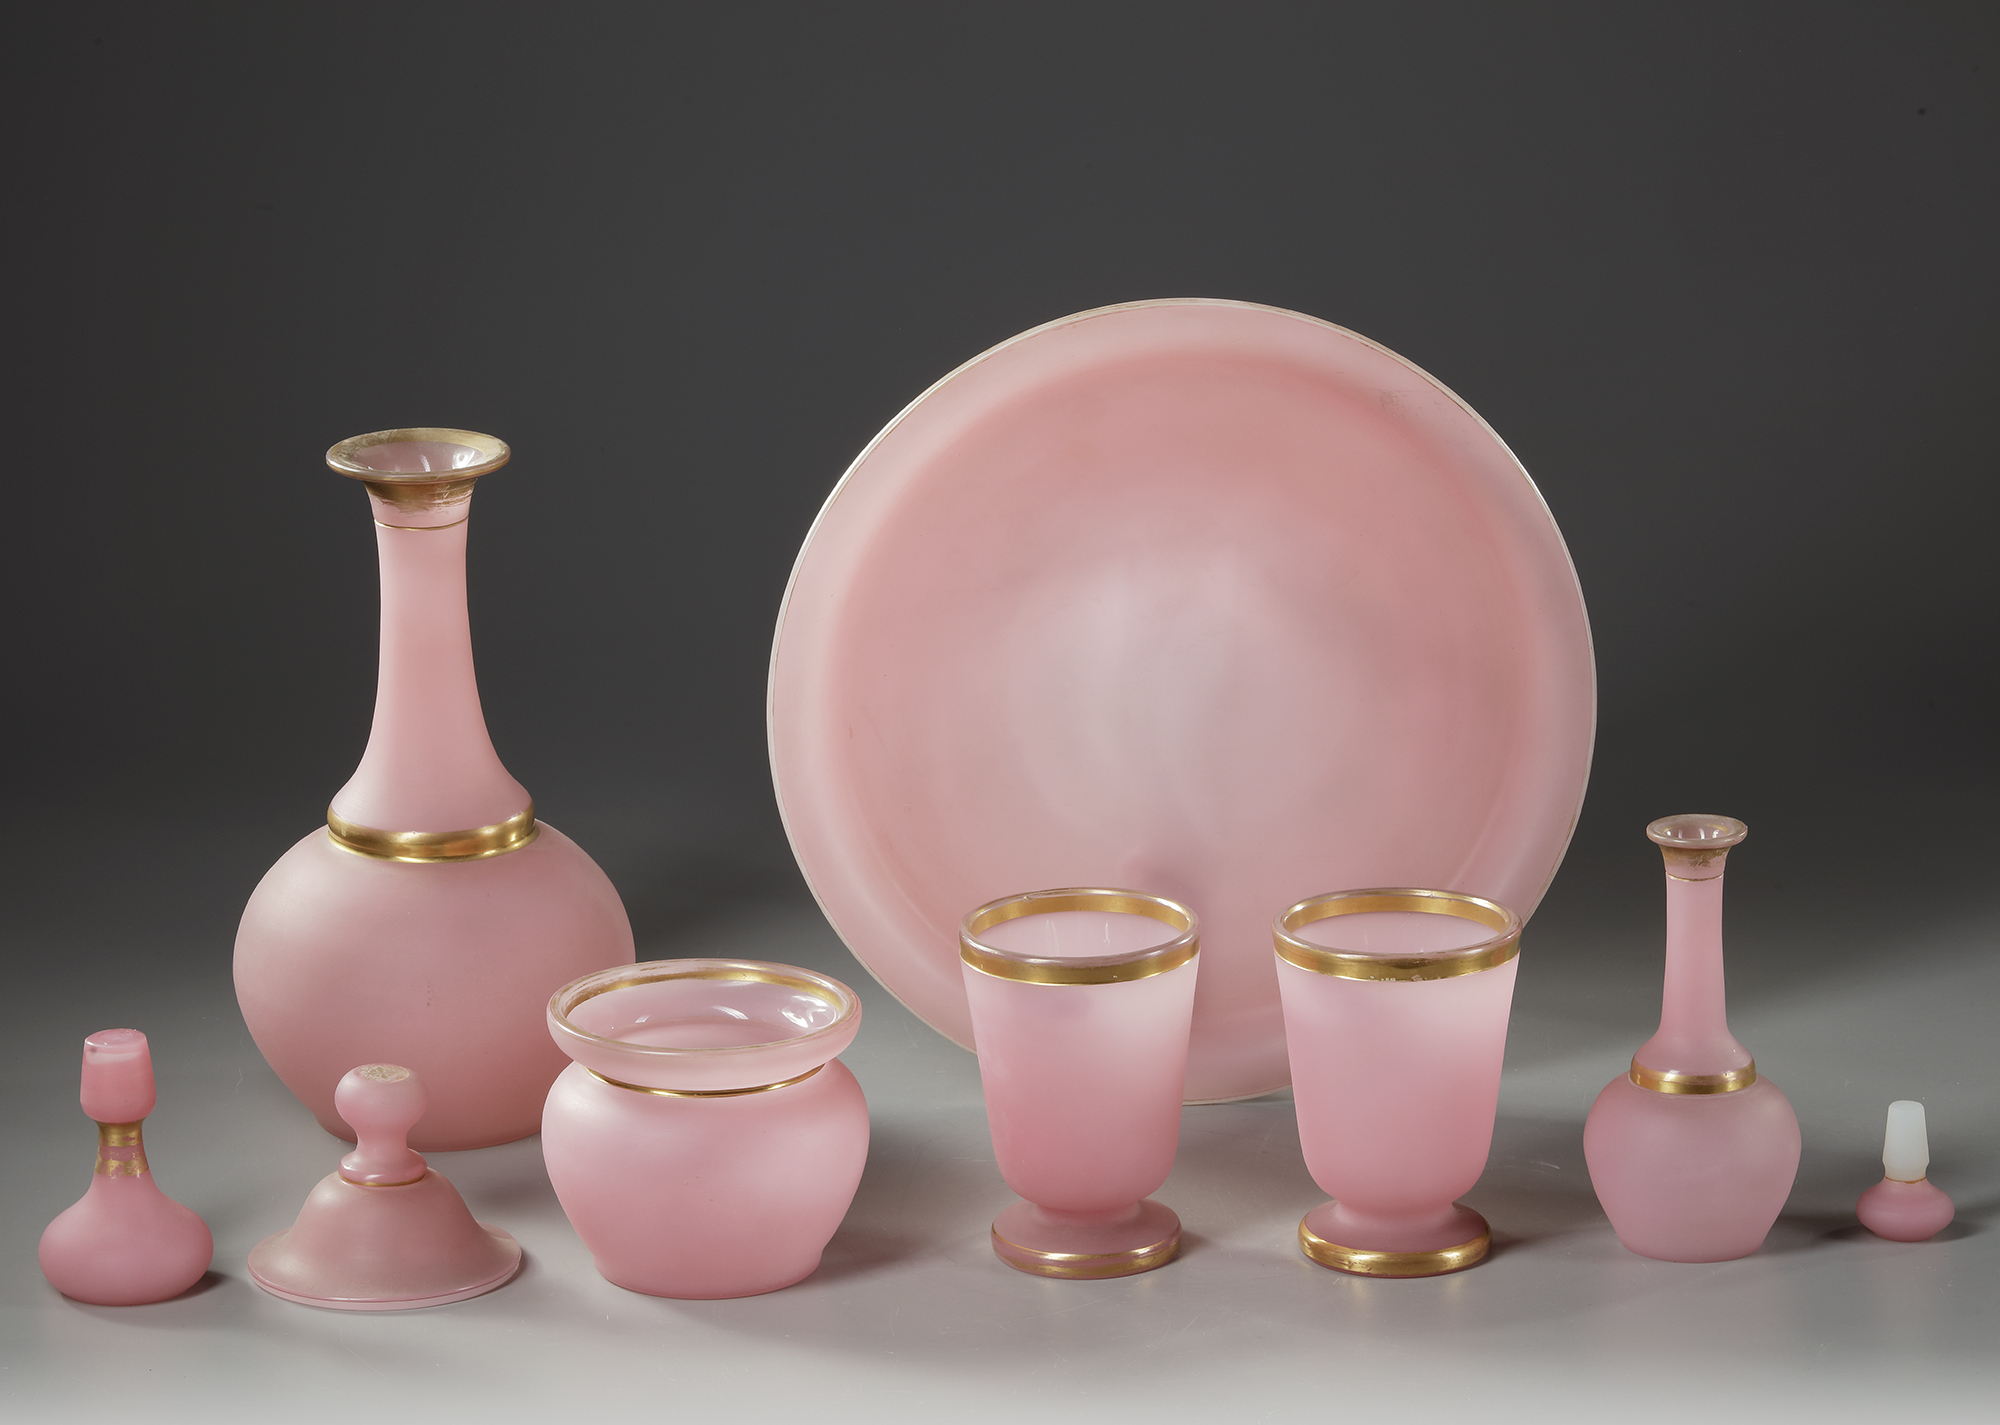 A FRENCH PINK OPALINE SERVICE SET,19TH CENTURY - Image 3 of 3